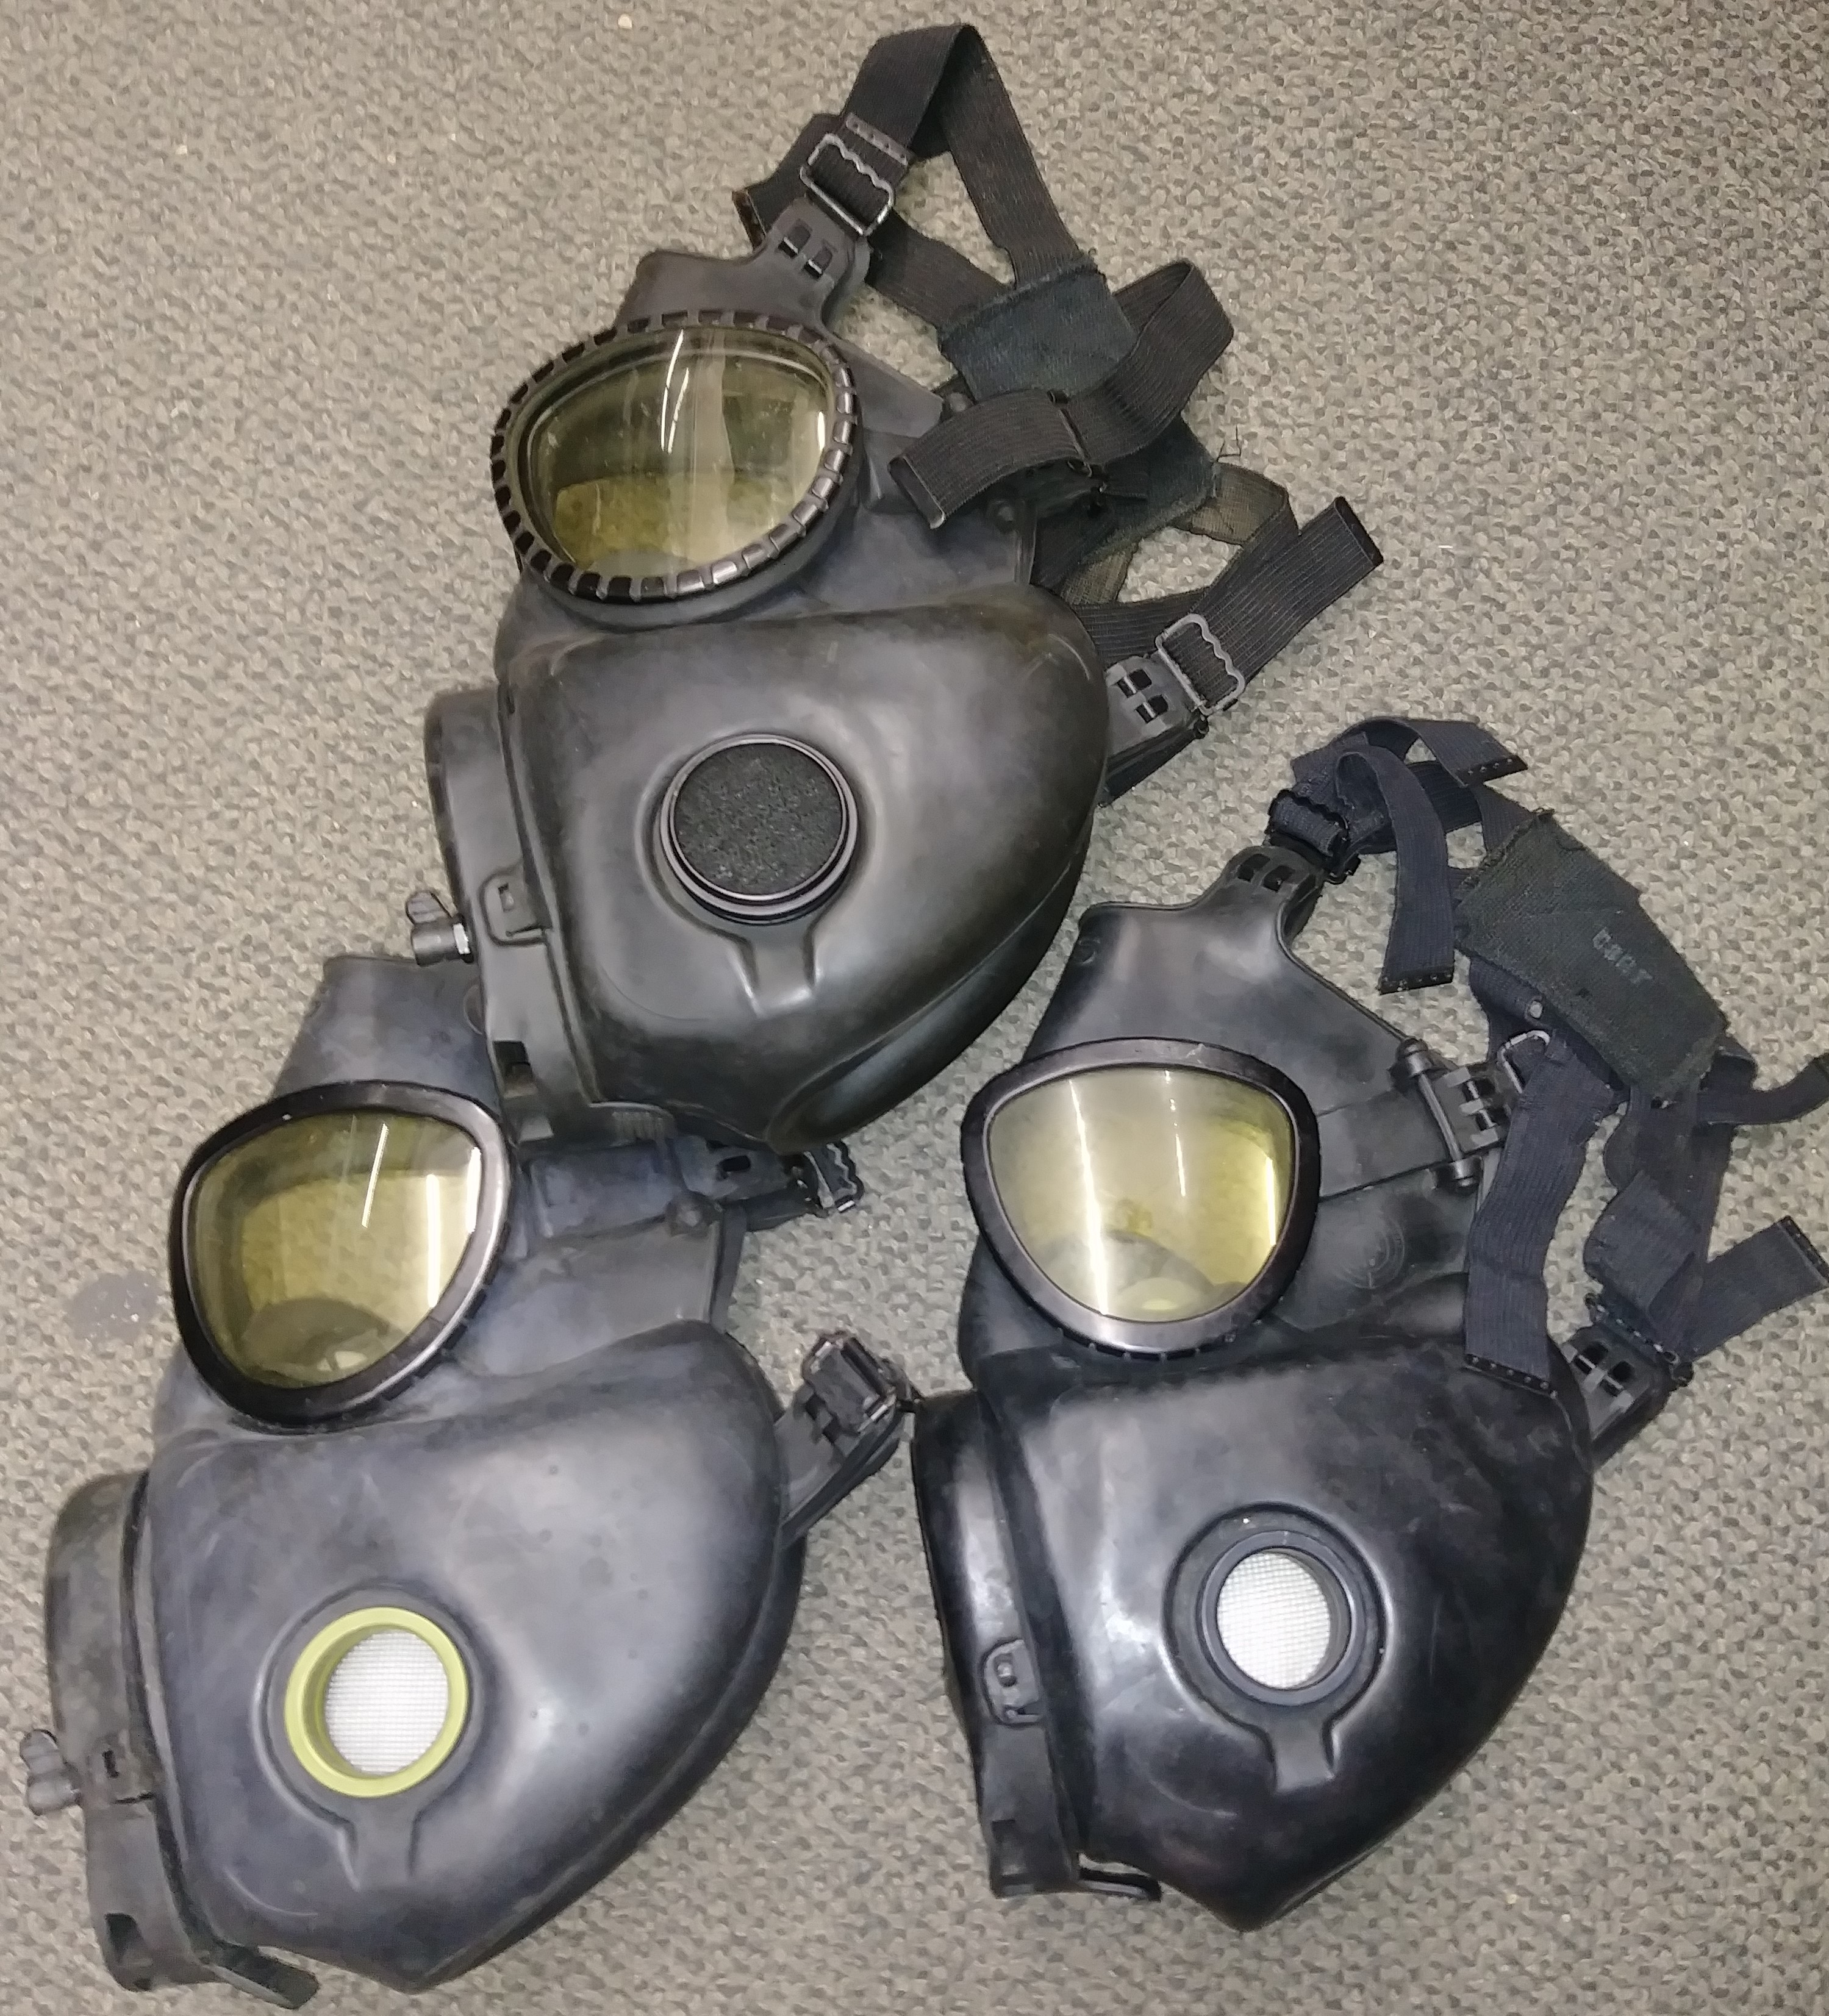 SURPLUS M17 GAS MASKS QTY 3